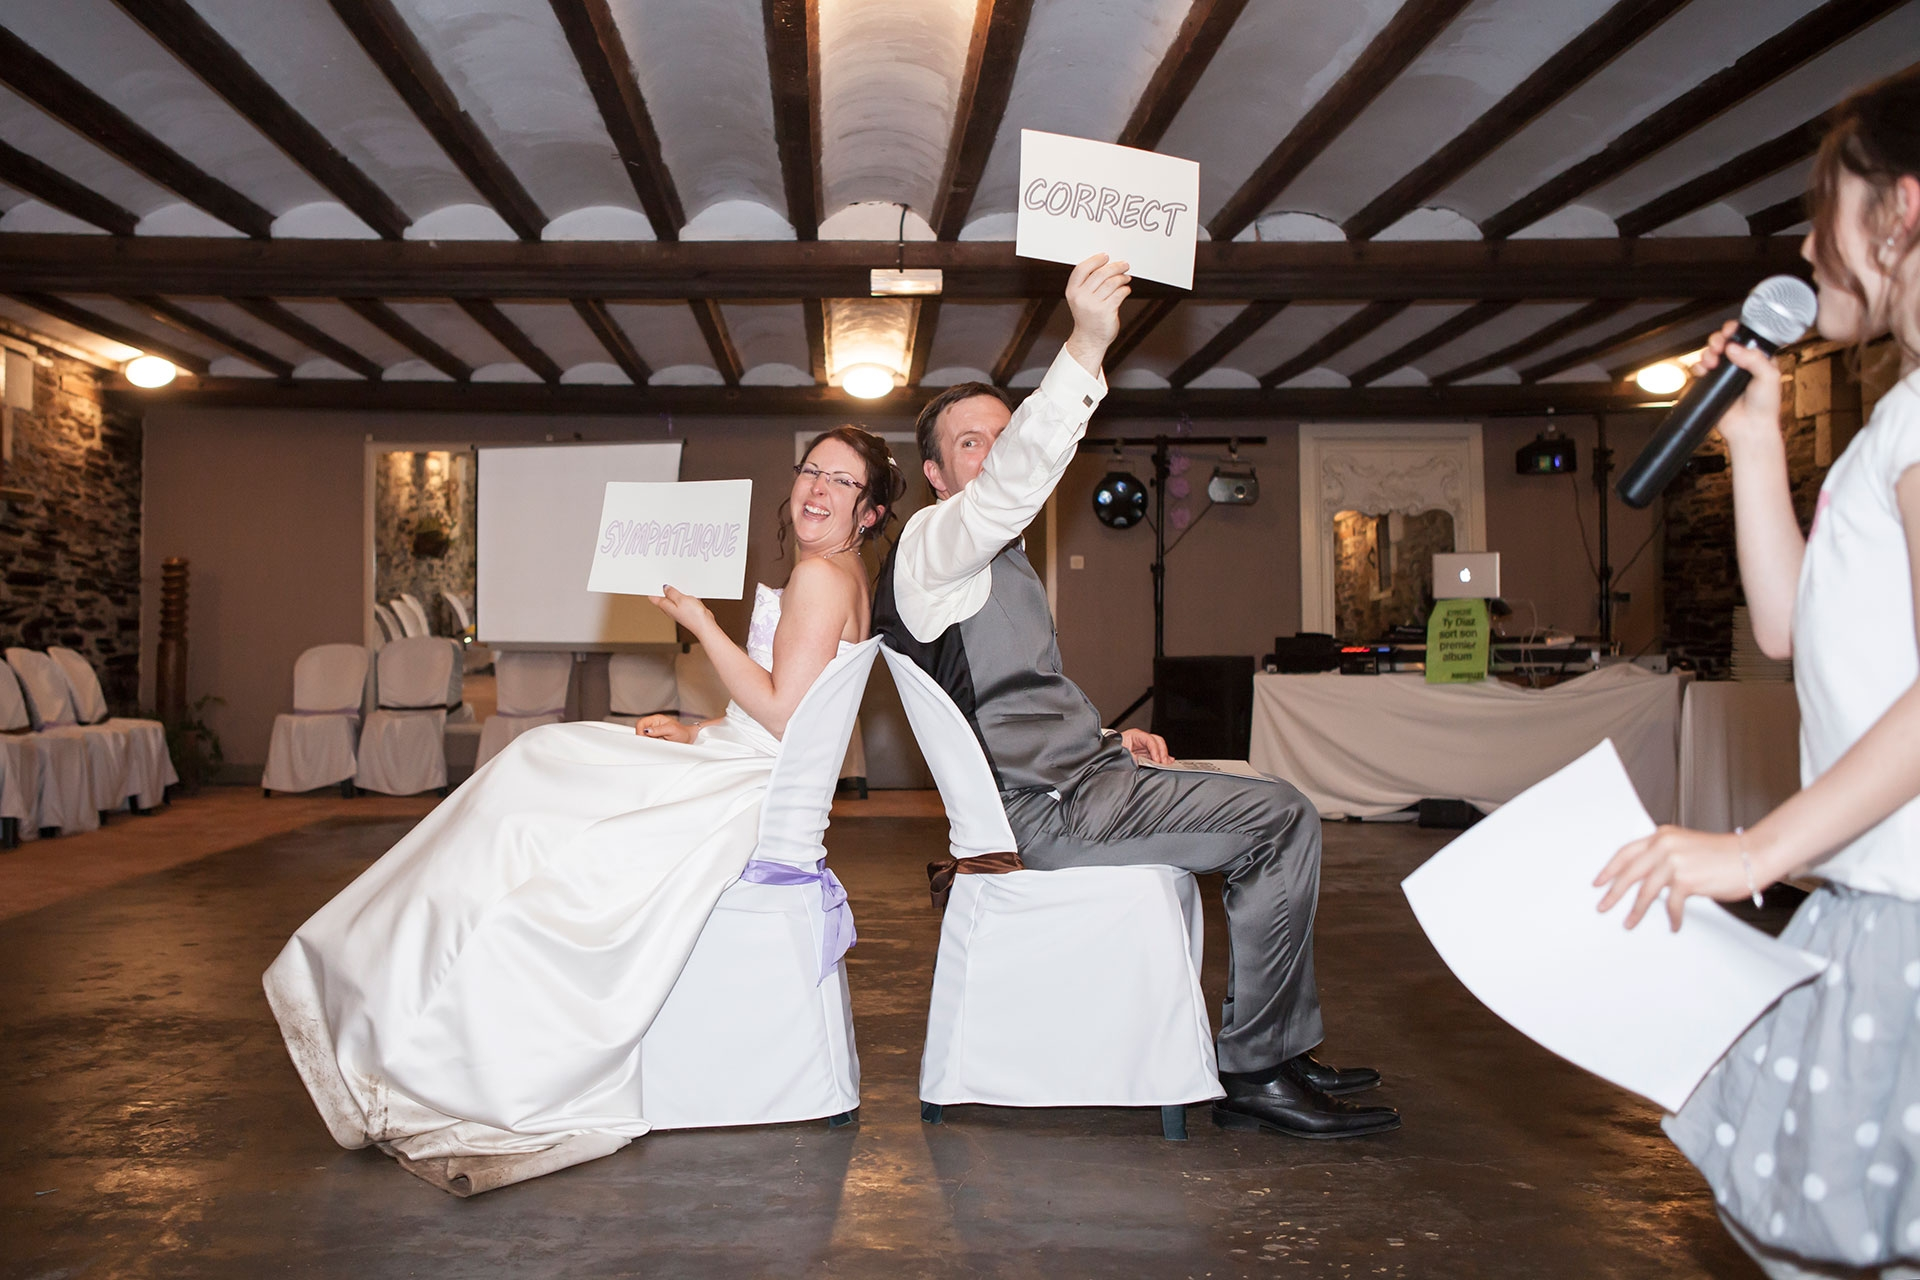 particuliers-mariage-oui-magaliguillaume-47